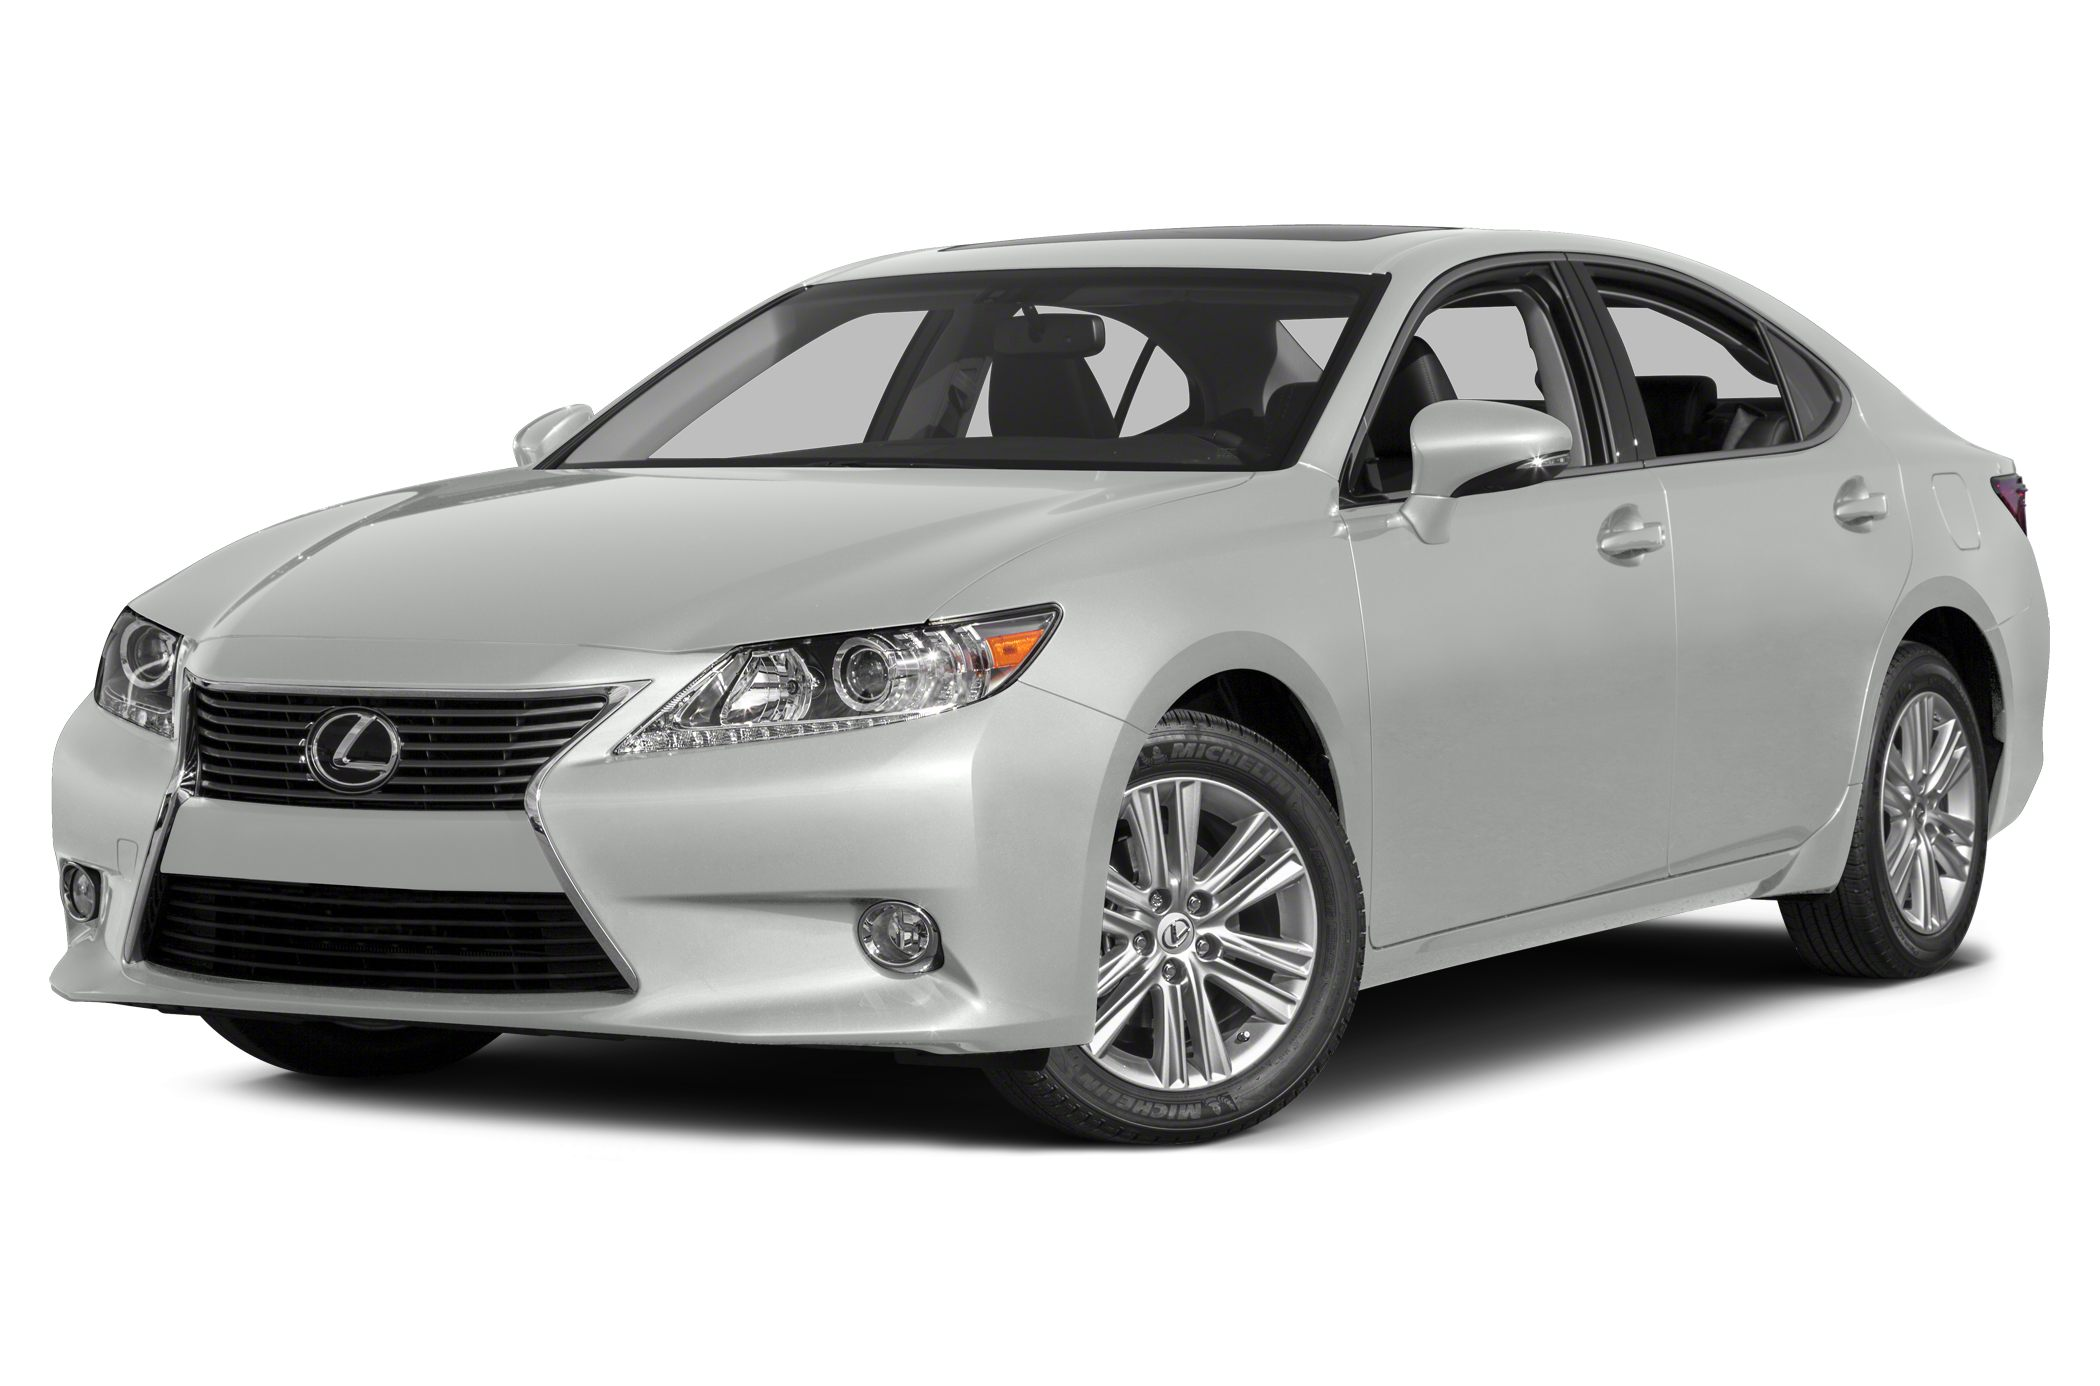 2015 Lexus ES 350 Base Sedan for sale in Bossier City for $38,809 with 0 miles